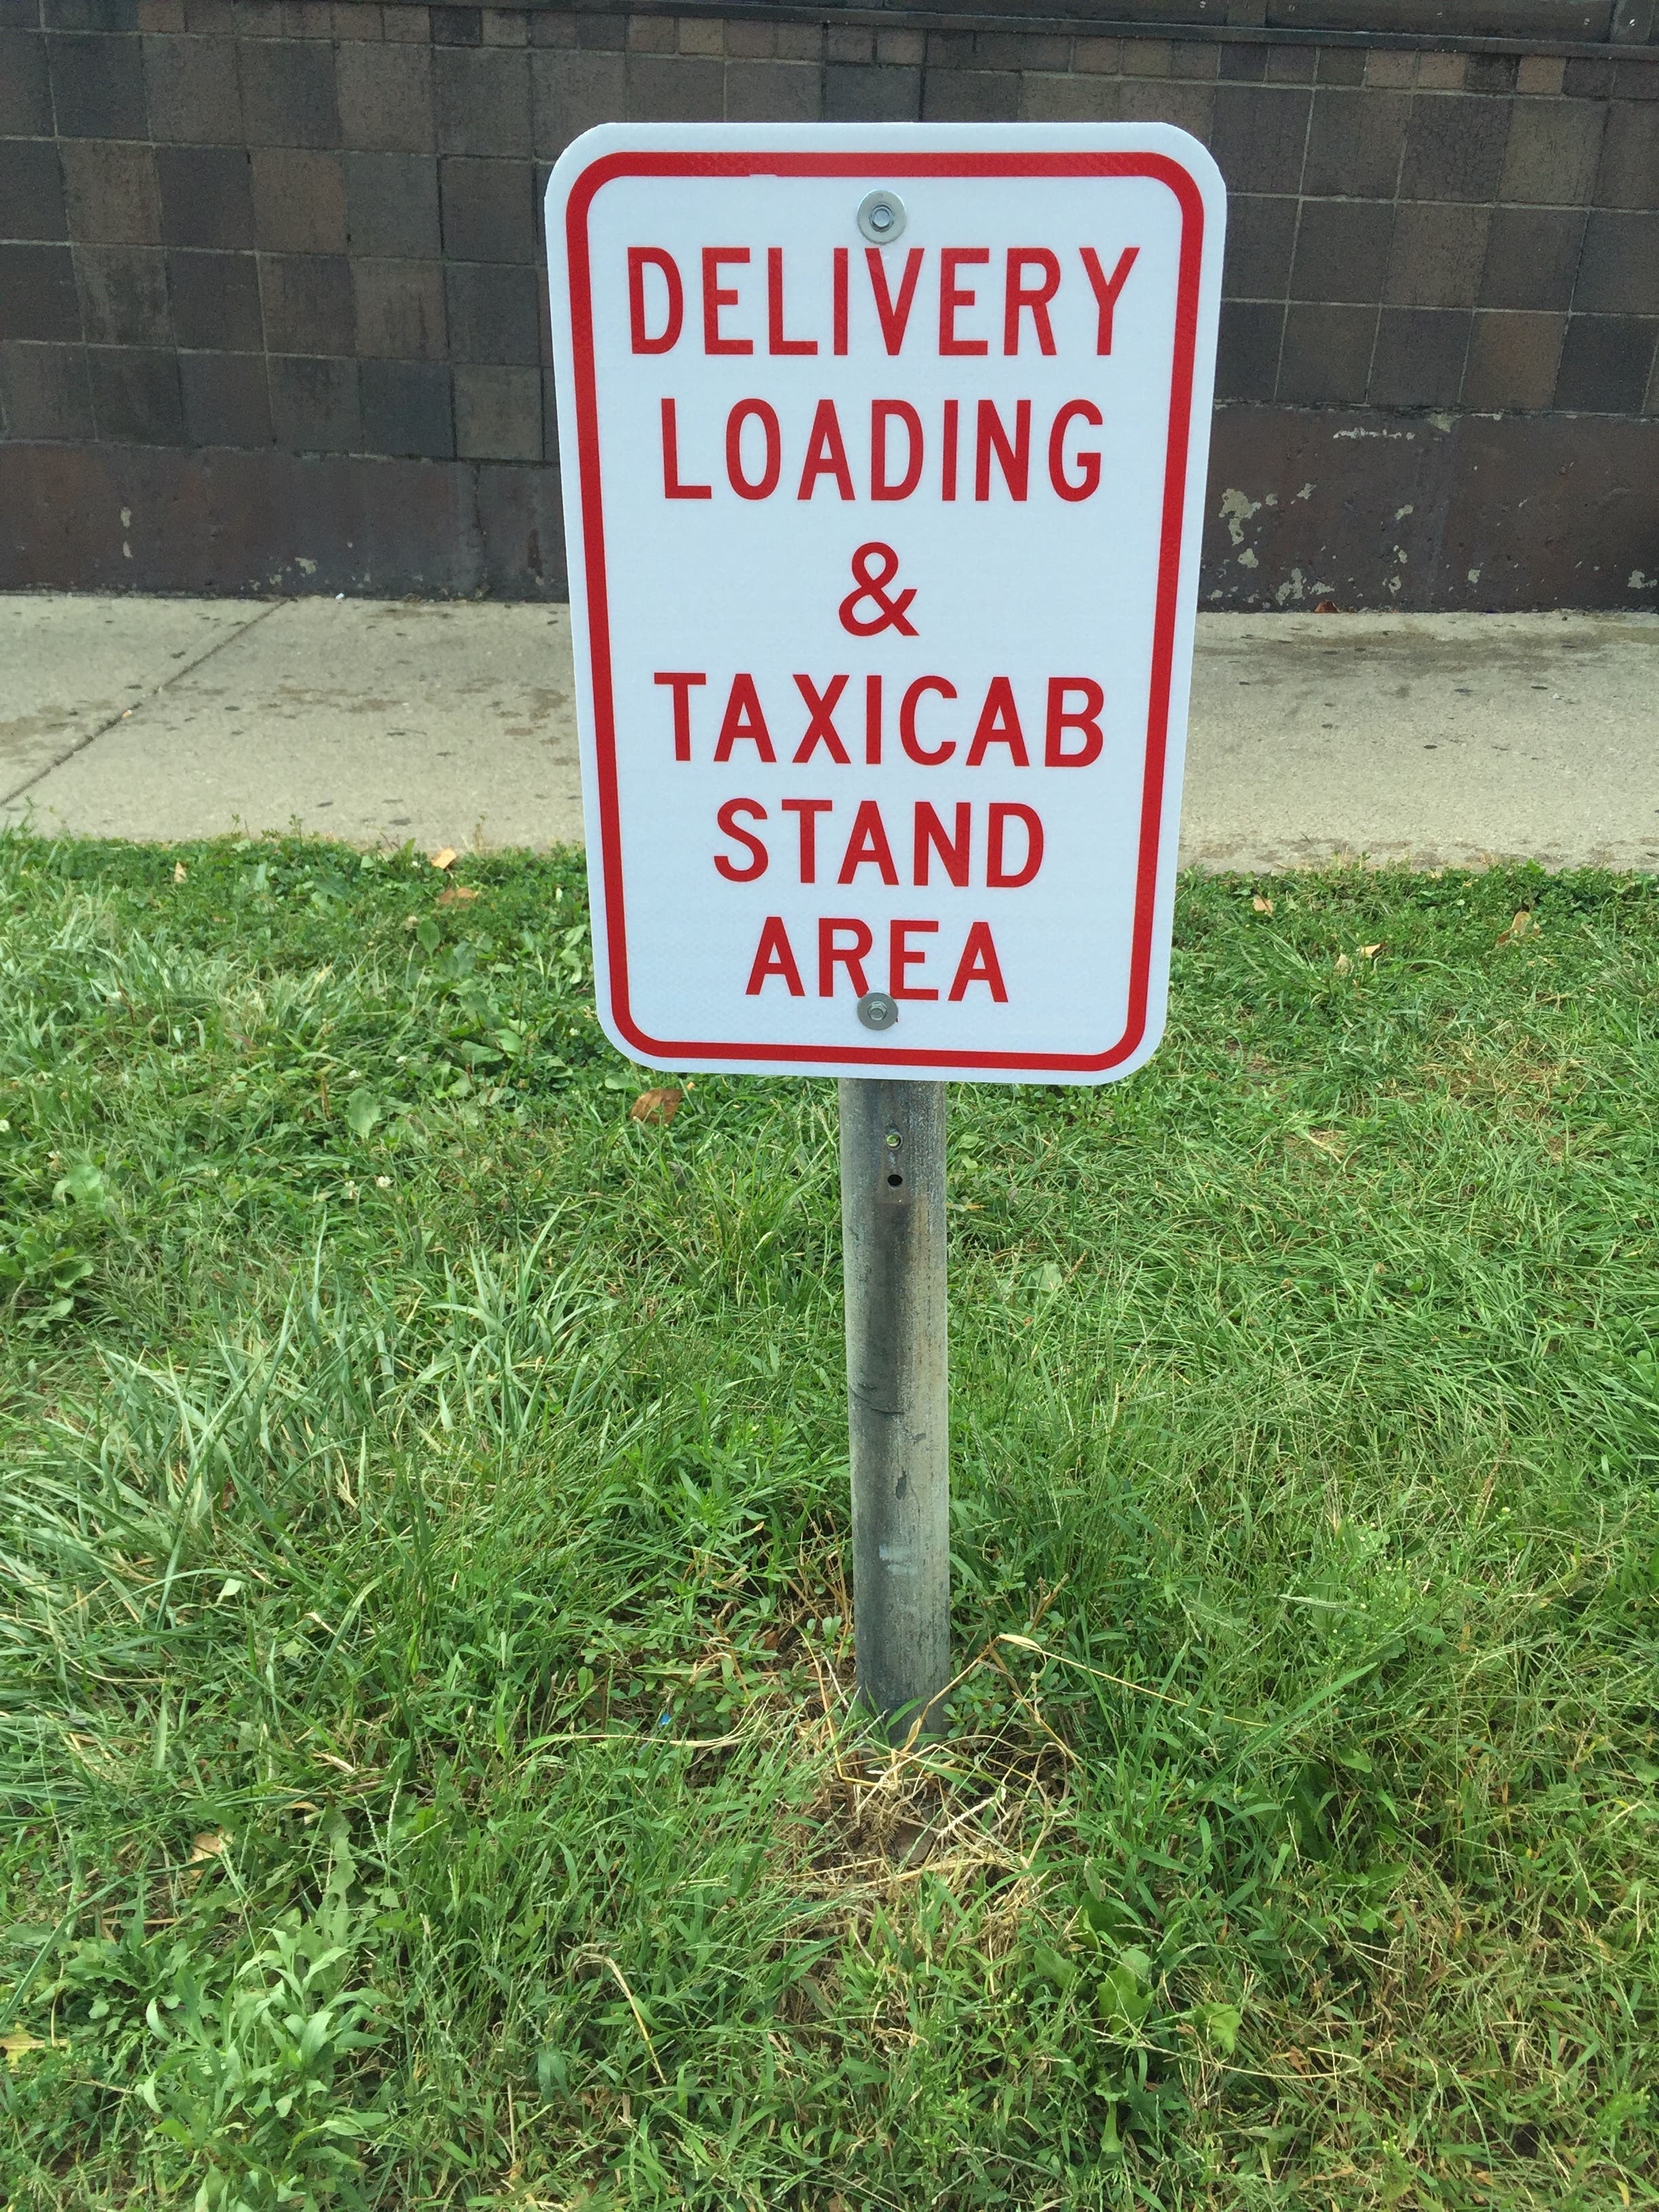 Goodbye Uptown Parking Spaces, Hello New Taxi Stand | Oxford